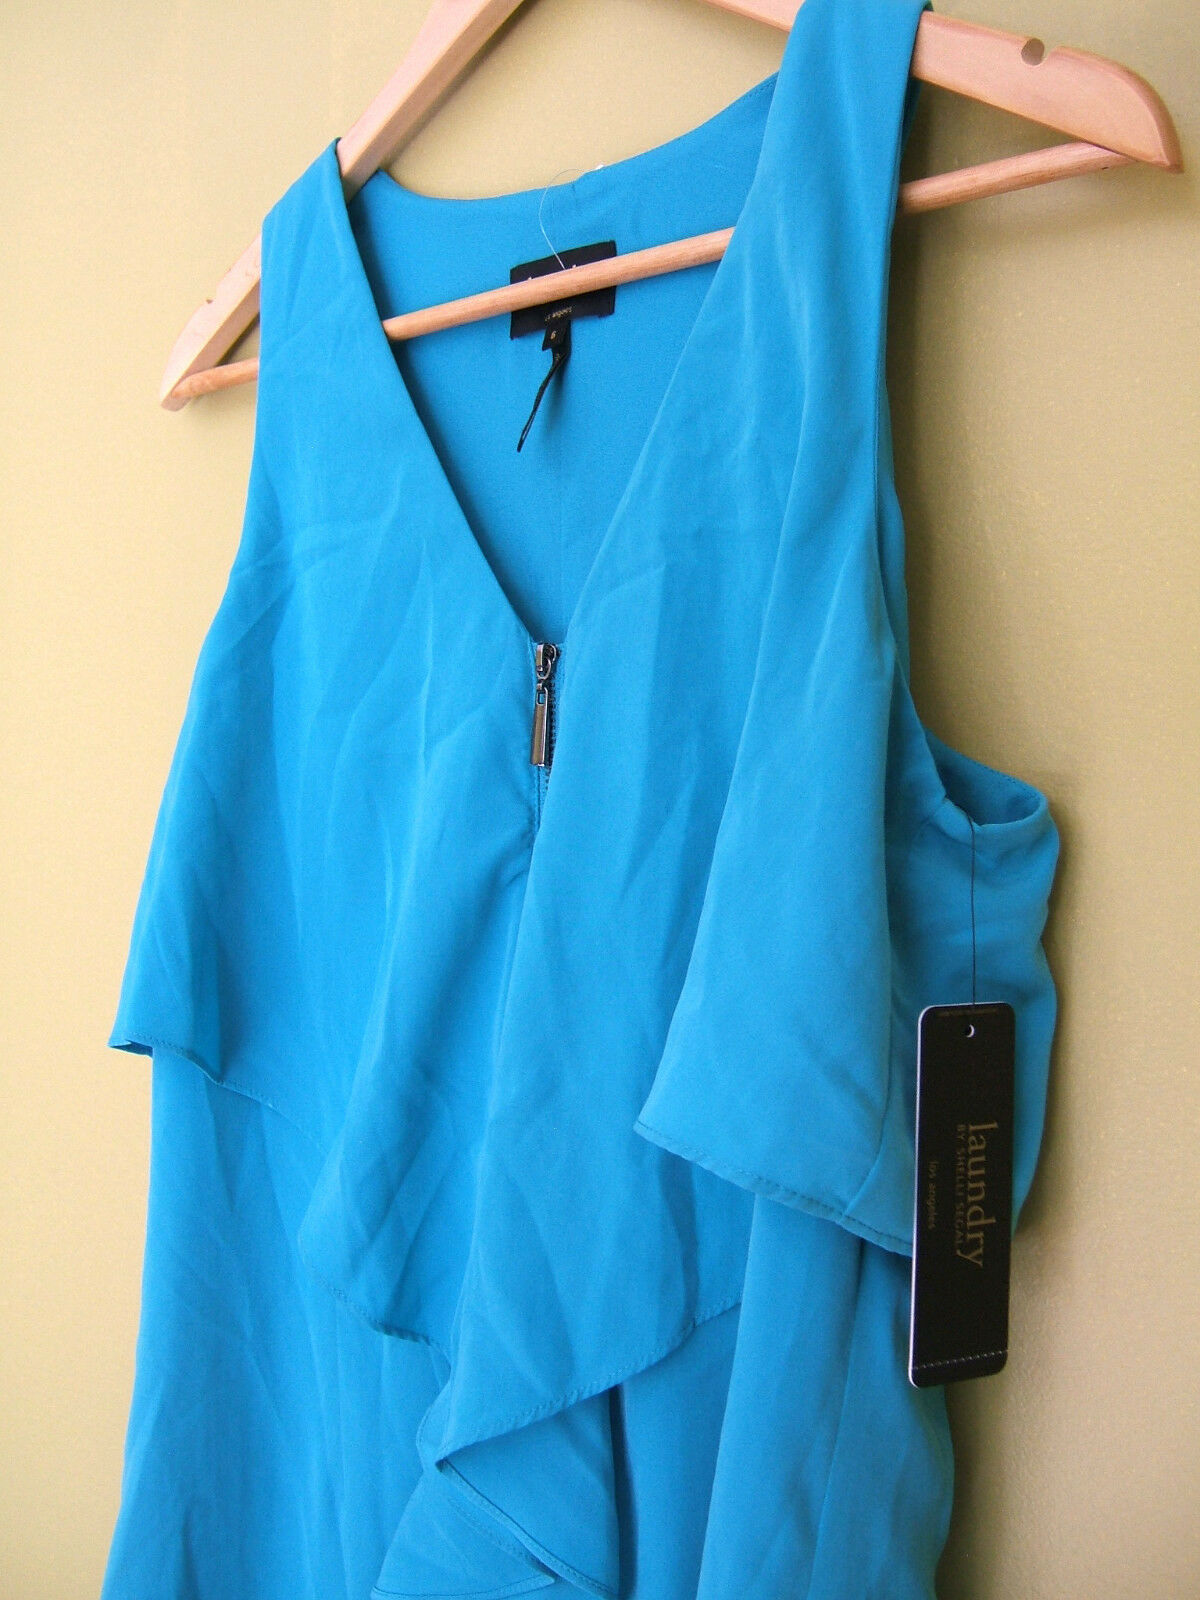 NWT Laundry by Shelli Segal Los Angeles Blau Silky Front Zip Bliss Dress 6